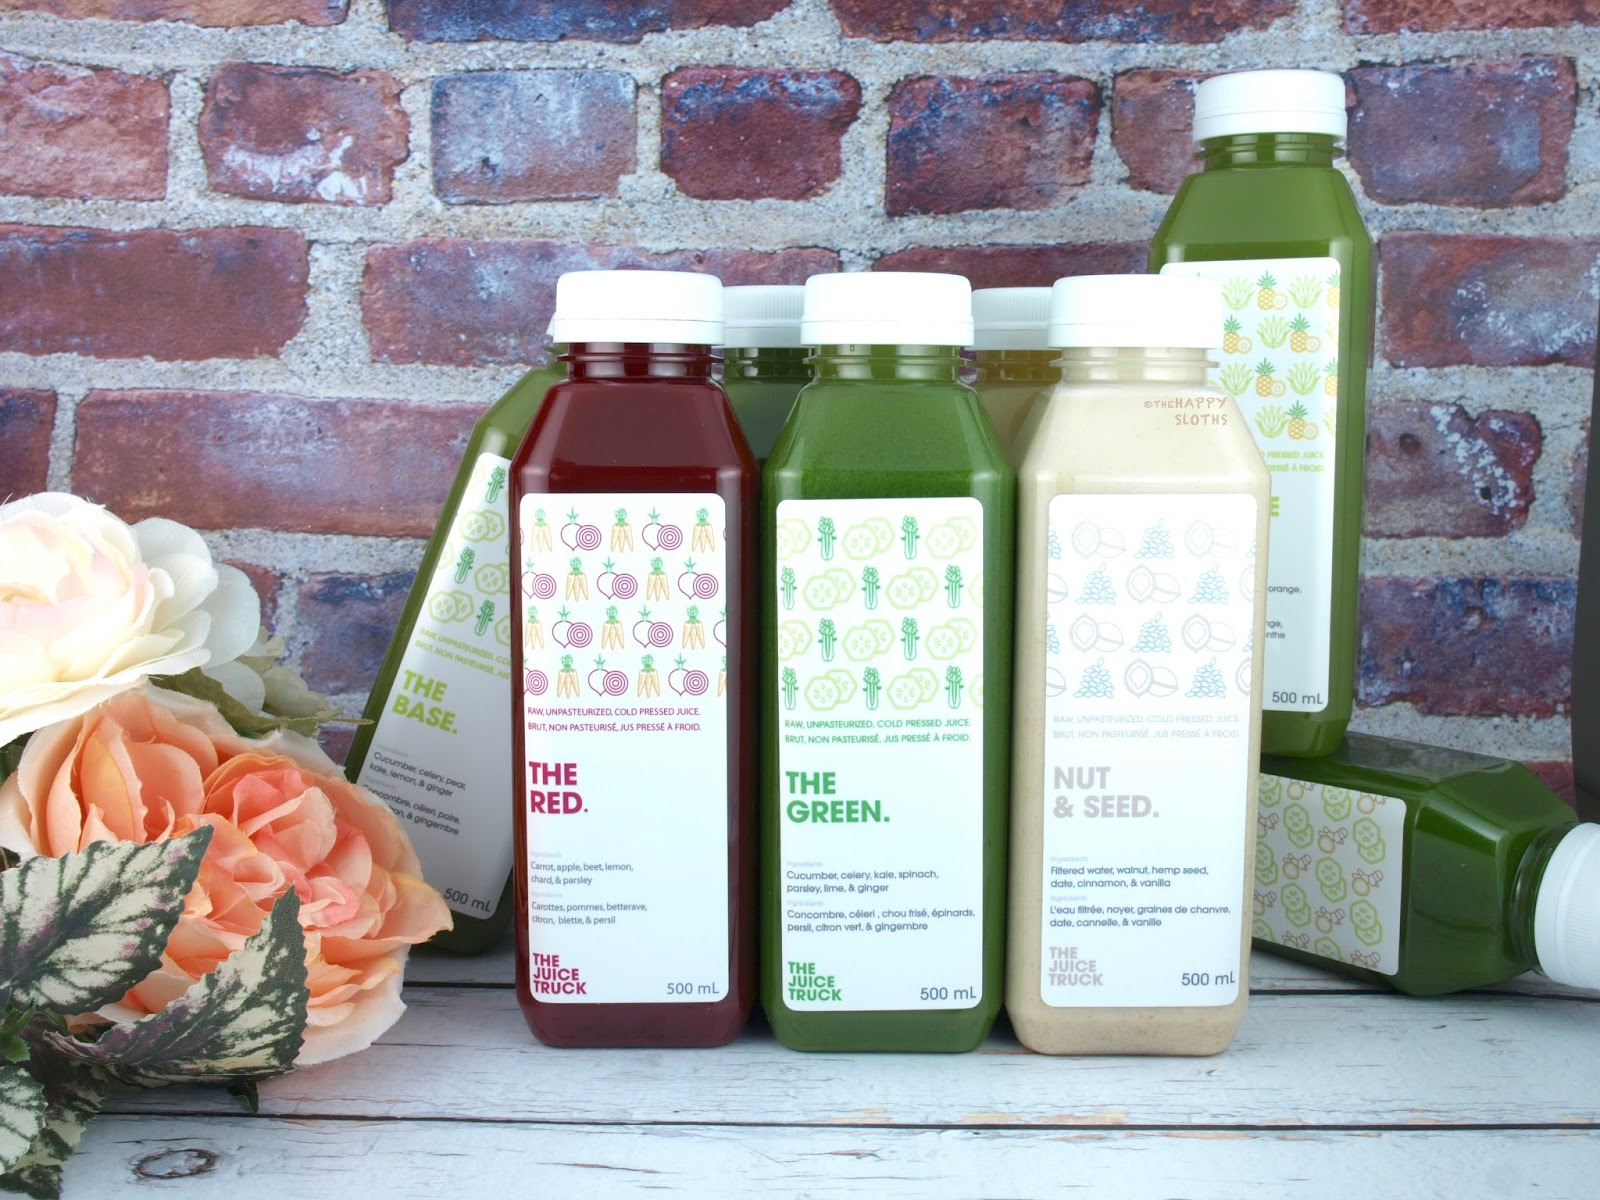 The Juice Truck Juice Cleanse Review